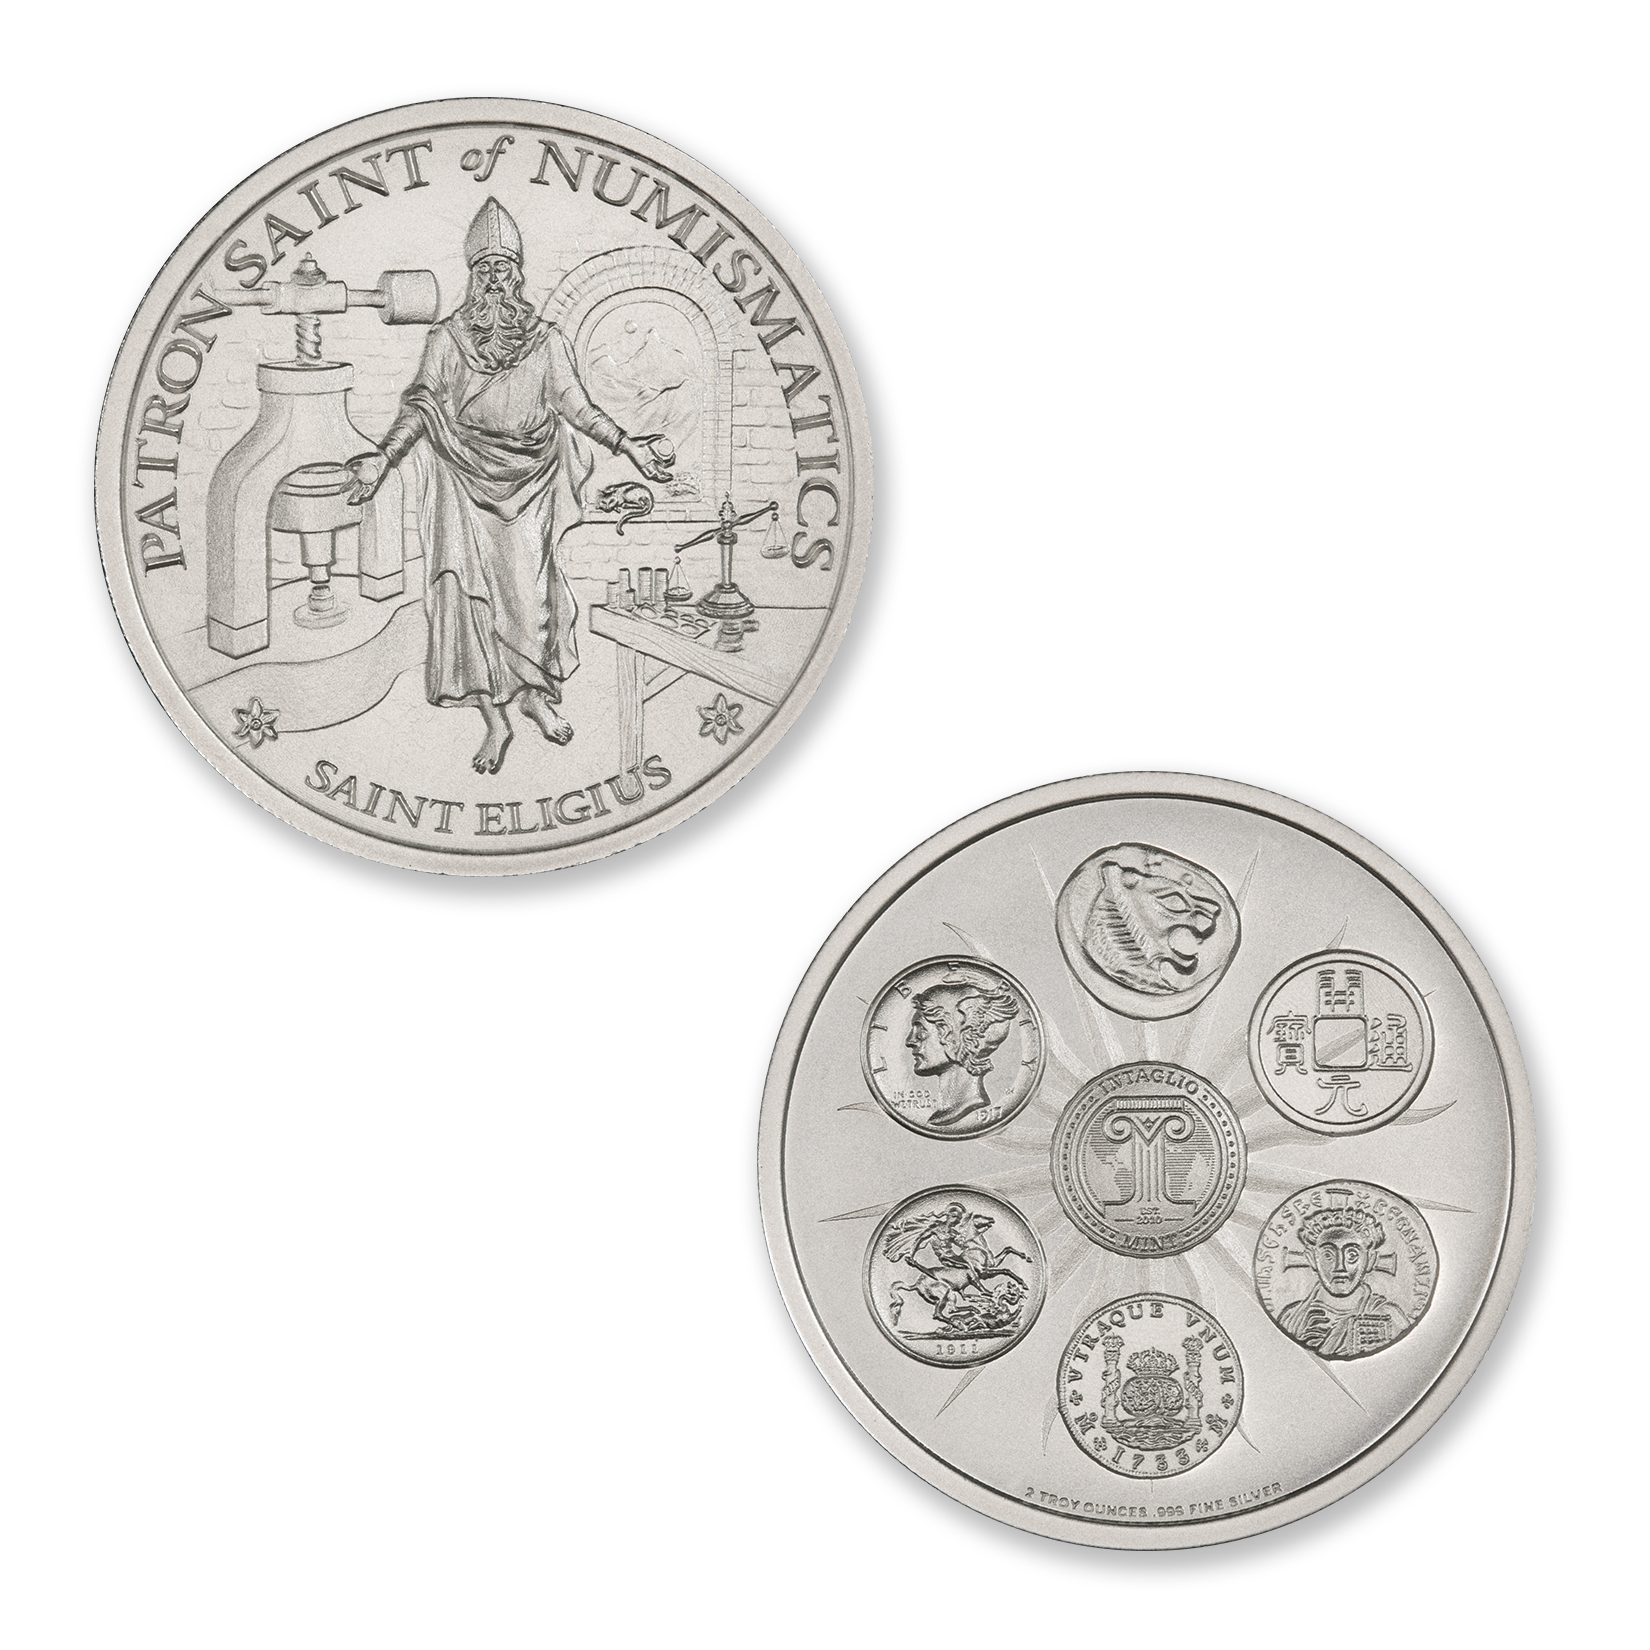 SAINT ELIGIUS – 2 TROY OUNCE – 39MM